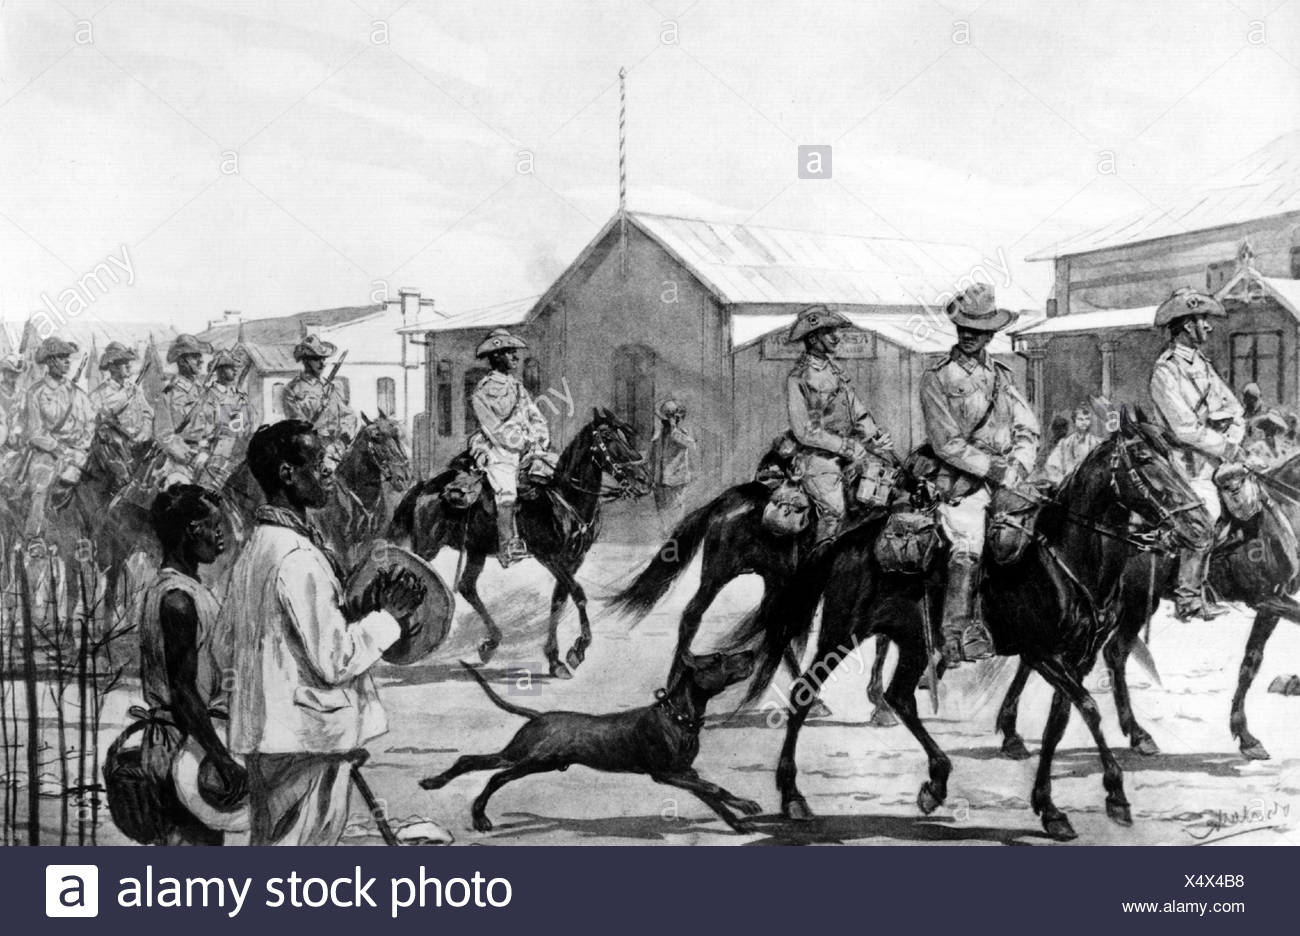 colonialism, German colonies, German South West Africa, marching-through of cavalry troop through Karibib during Herero war, sketch, 1904 / 1907, Additional-Rights-Clearances-NA - Stock Image